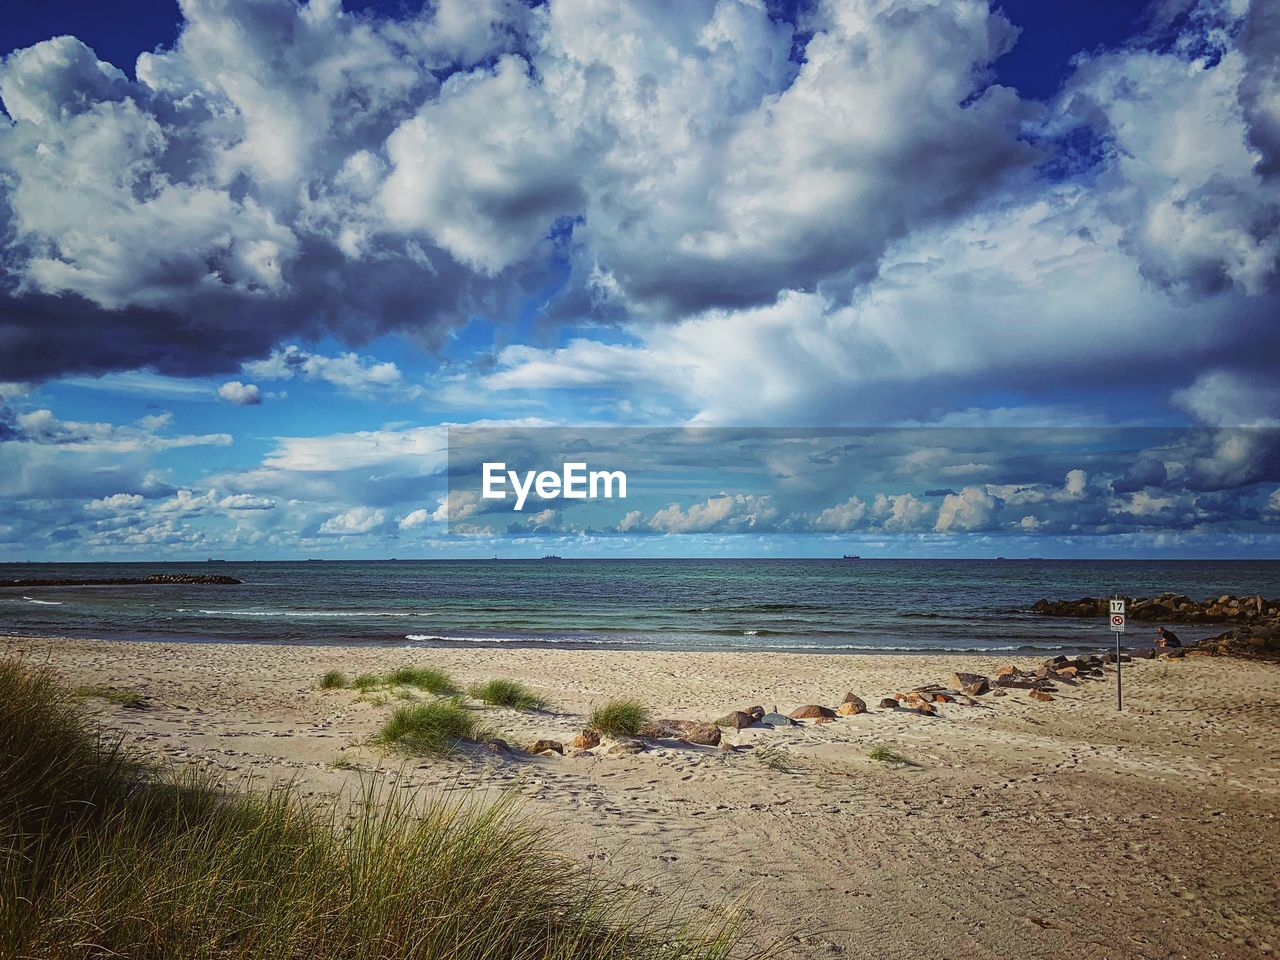 cloud - sky, sky, land, water, beauty in nature, beach, sea, scenics - nature, tranquil scene, tranquility, horizon, horizon over water, nature, sand, day, grass, plant, no people, non-urban scene, outdoors, marram grass